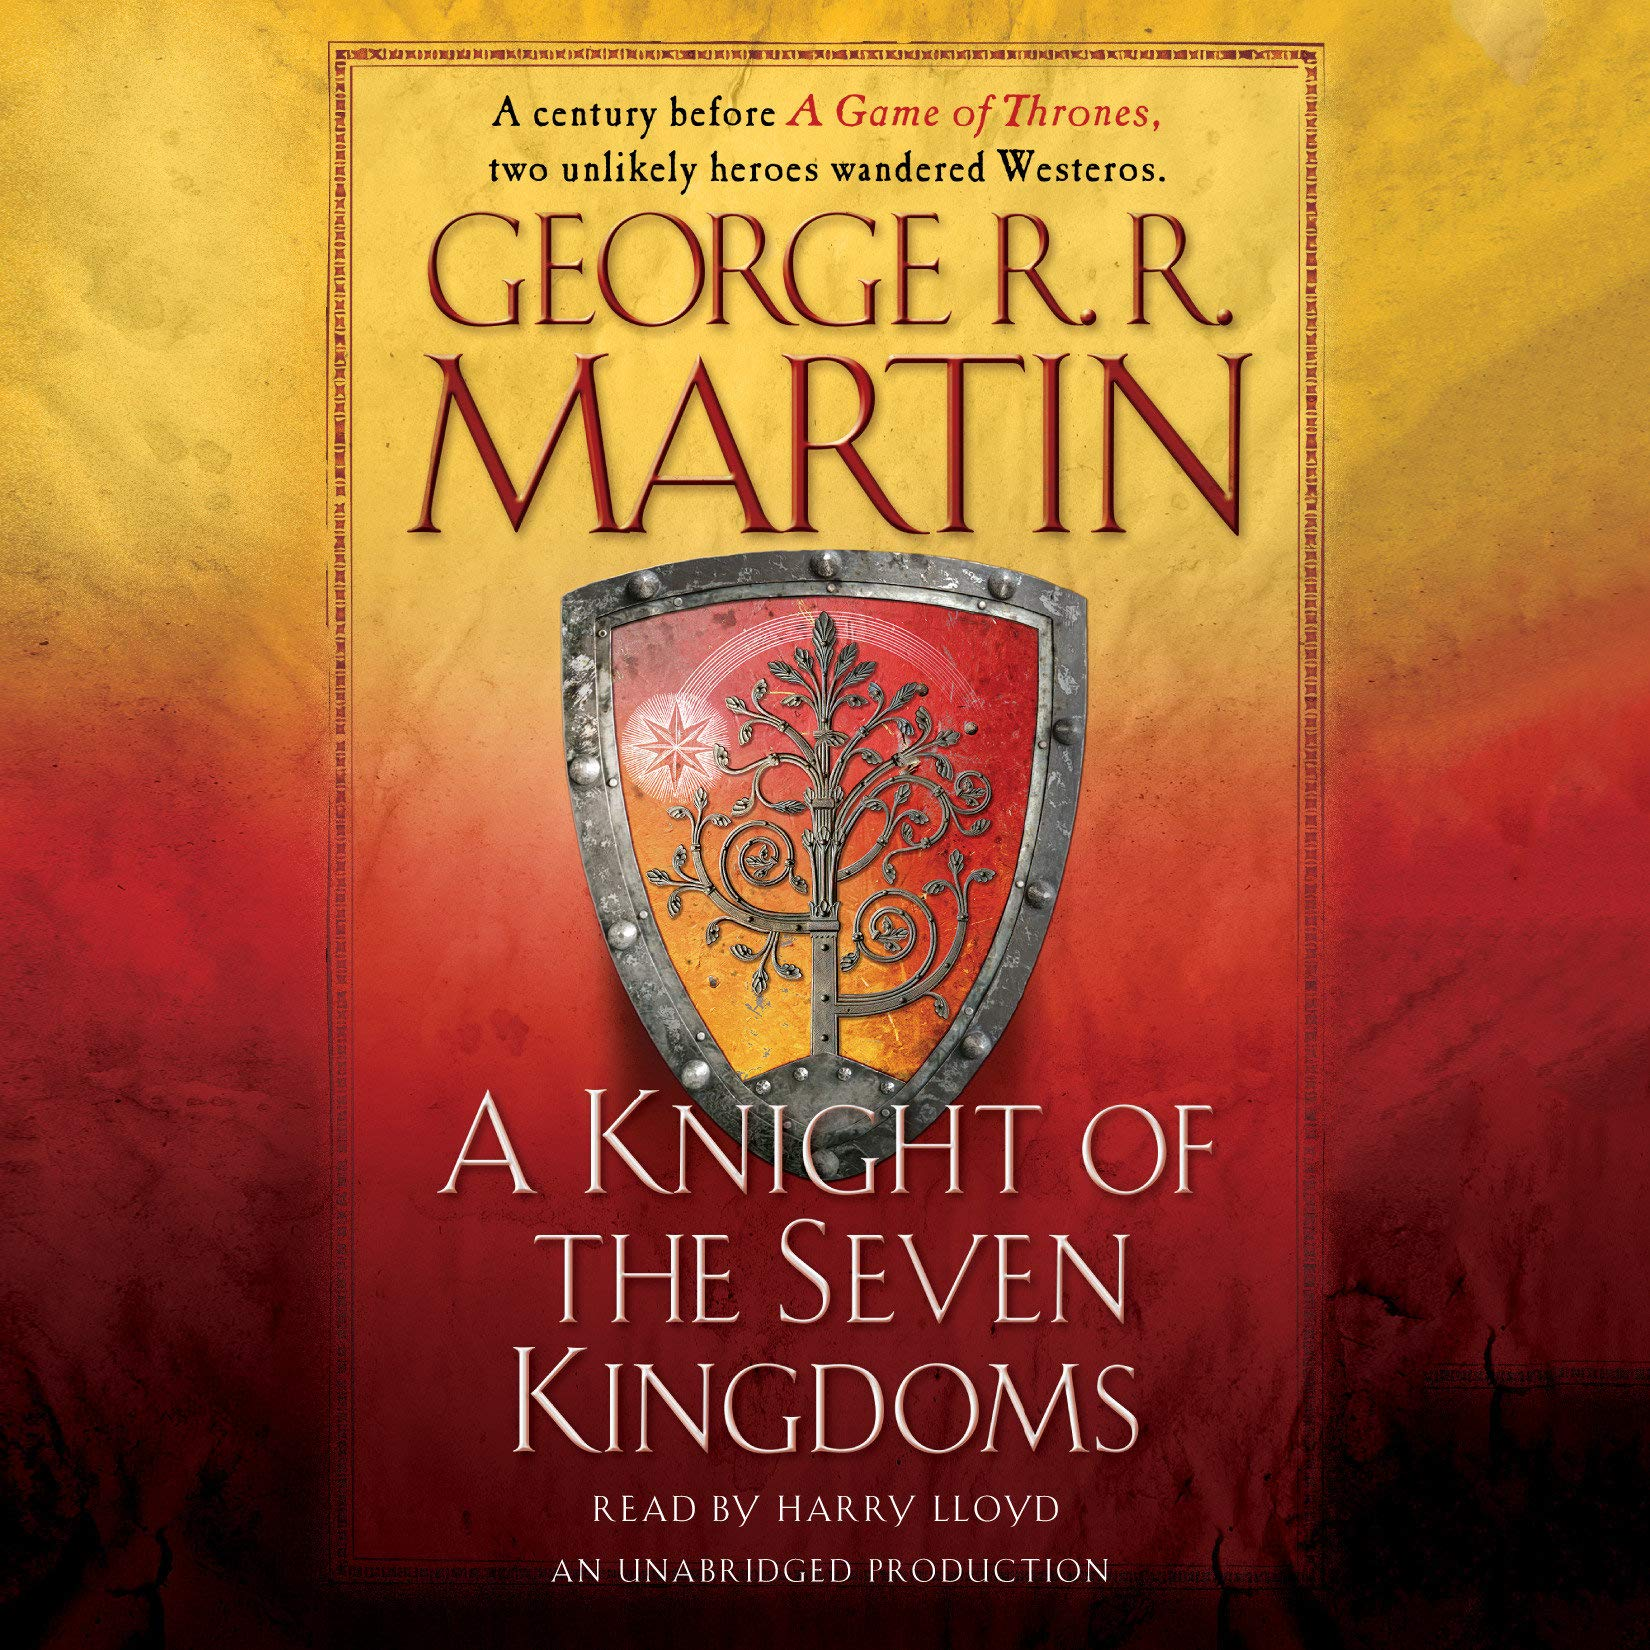 Amazon.com: A Knight of the Seven Kingdoms (A Song of Ice and Fire)  (9780147526359): Martin, George R. R., Lloyd, Harry: Books